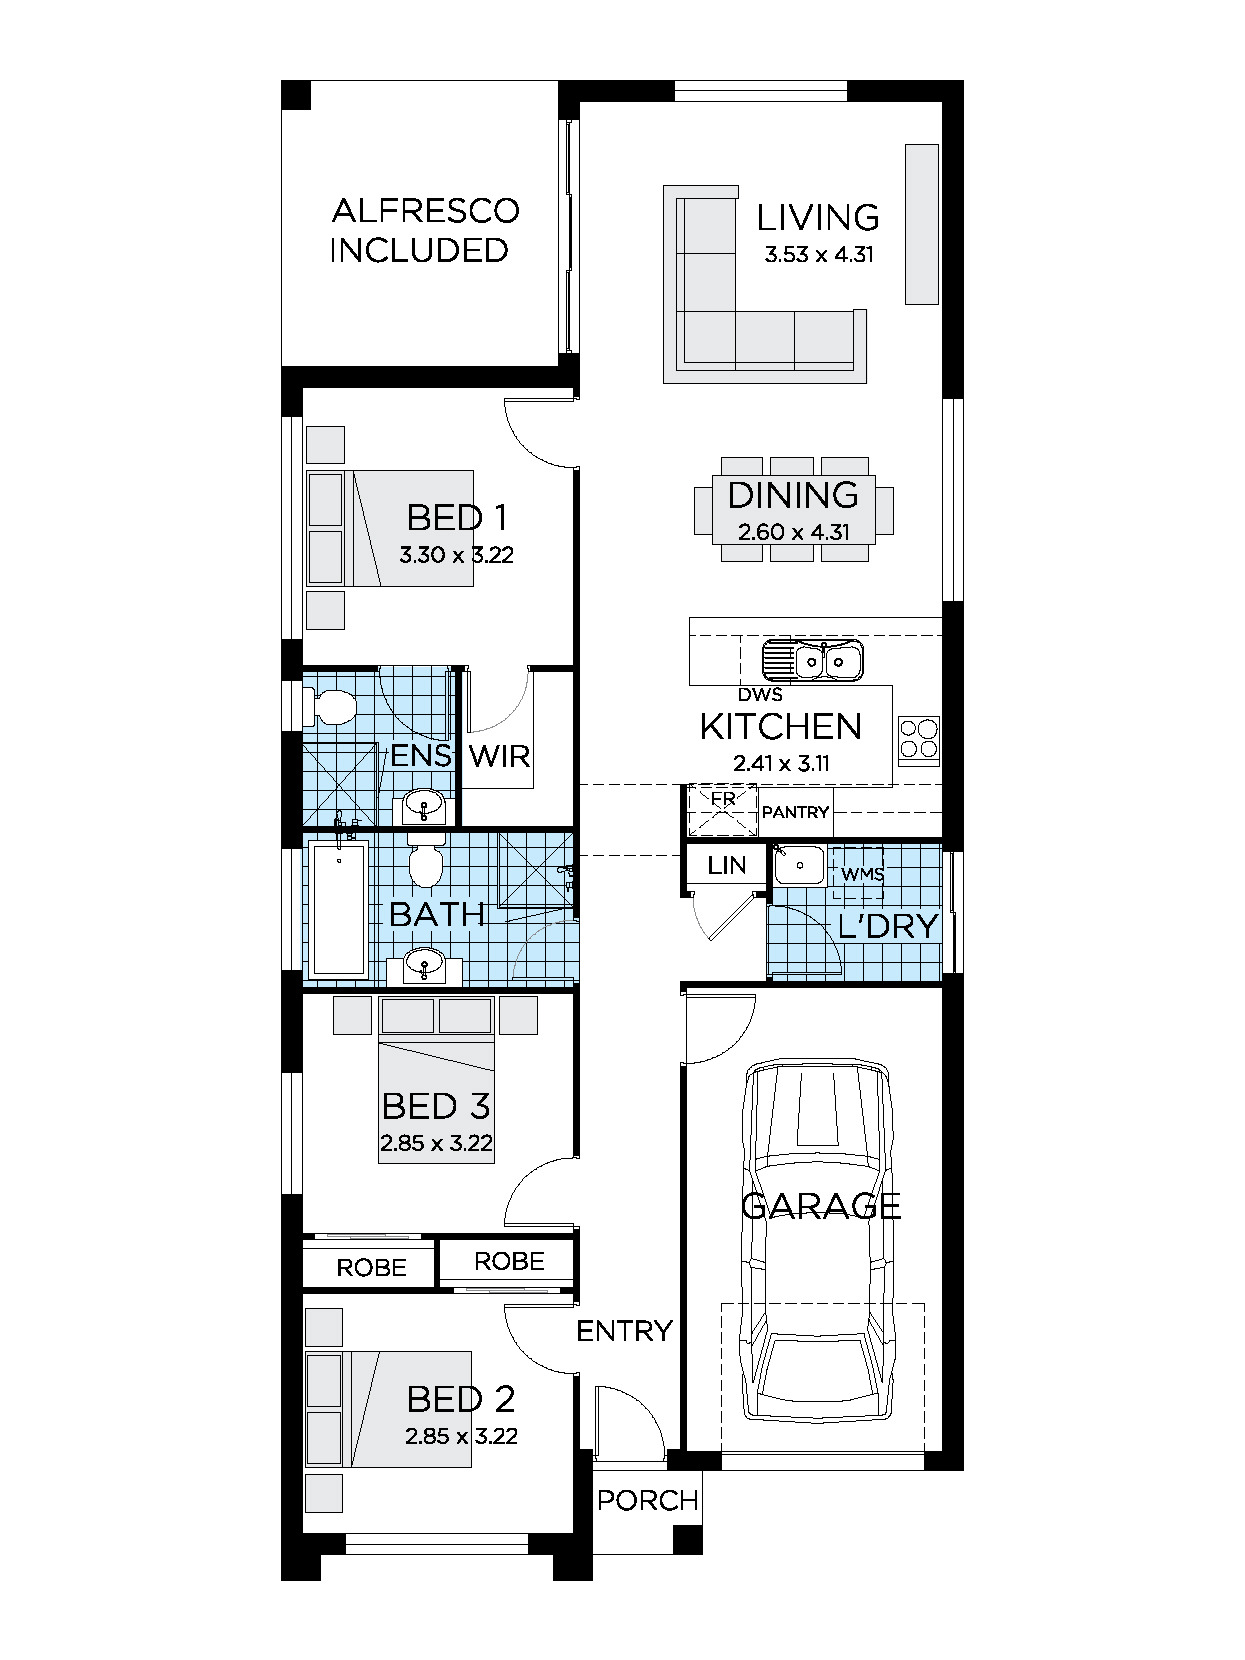 House Plan with Pictures Luxury Verve House Design 3 4 Bedroom House Plan